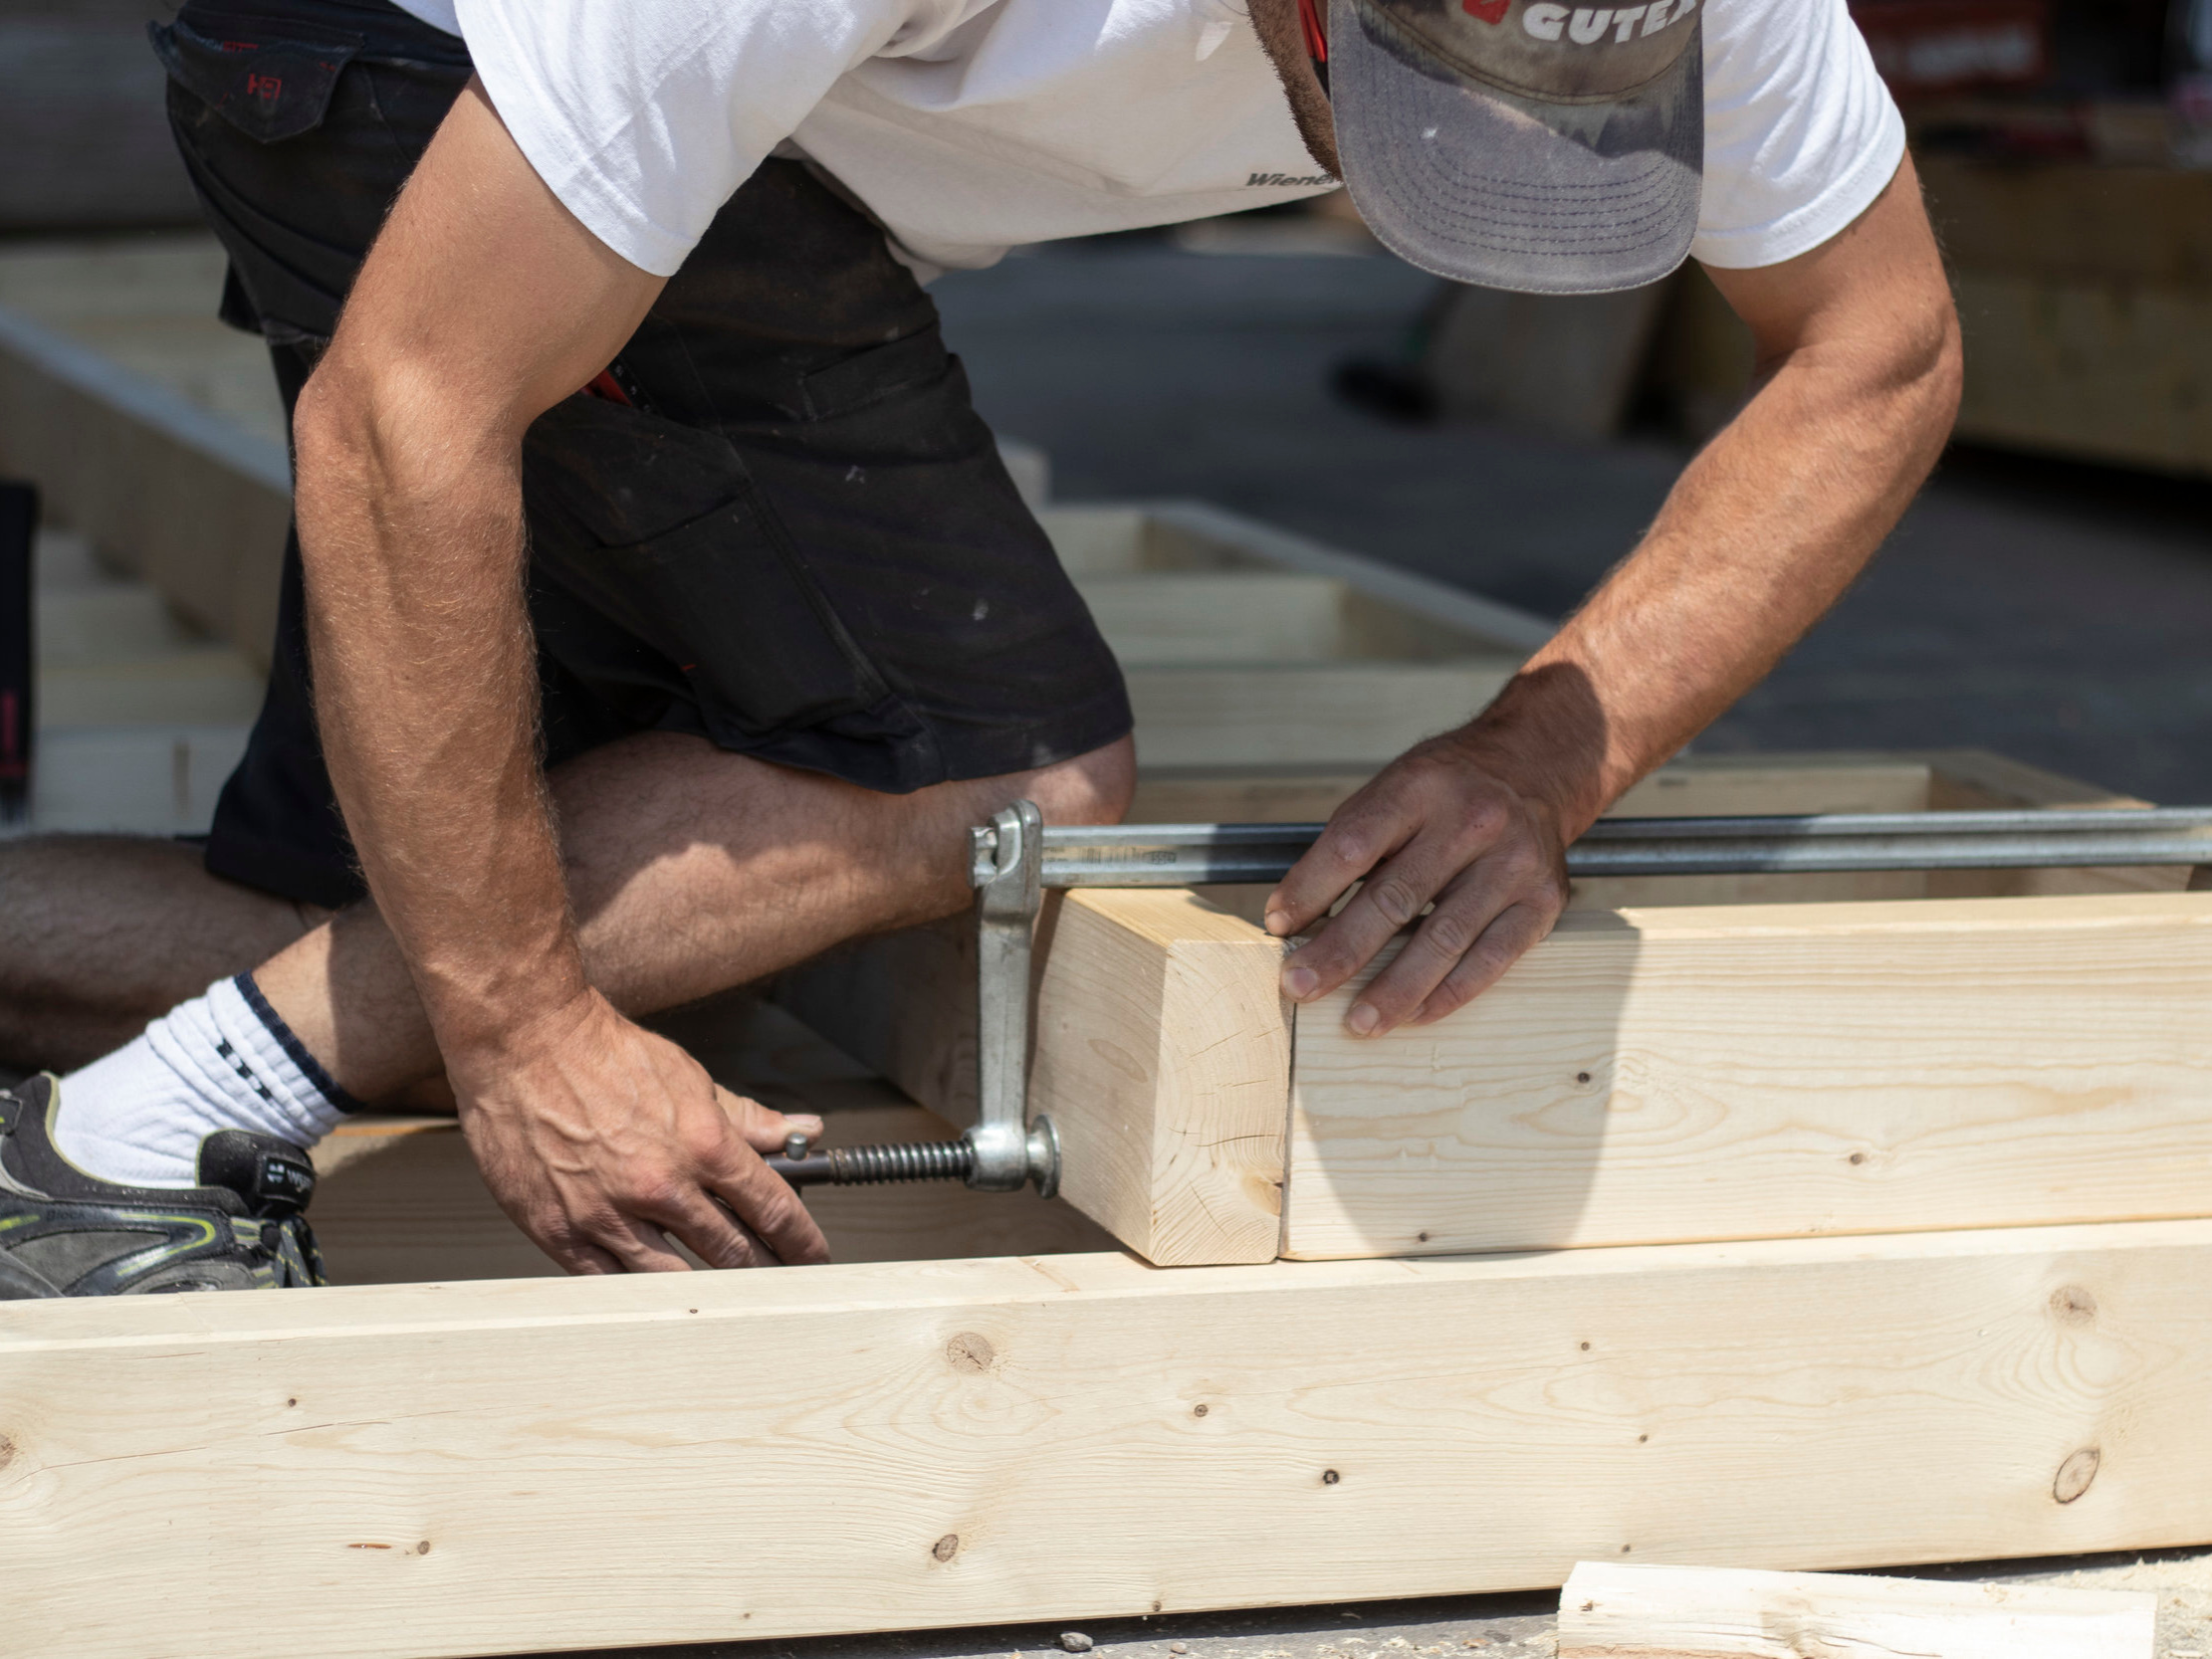 Carpentry - HANDYMACK helps install and build a variety of customized carpentry projects. From cabinets to pool deckse provide experienced, master craftsmen who can handle every project with the quality you expect and deserve.